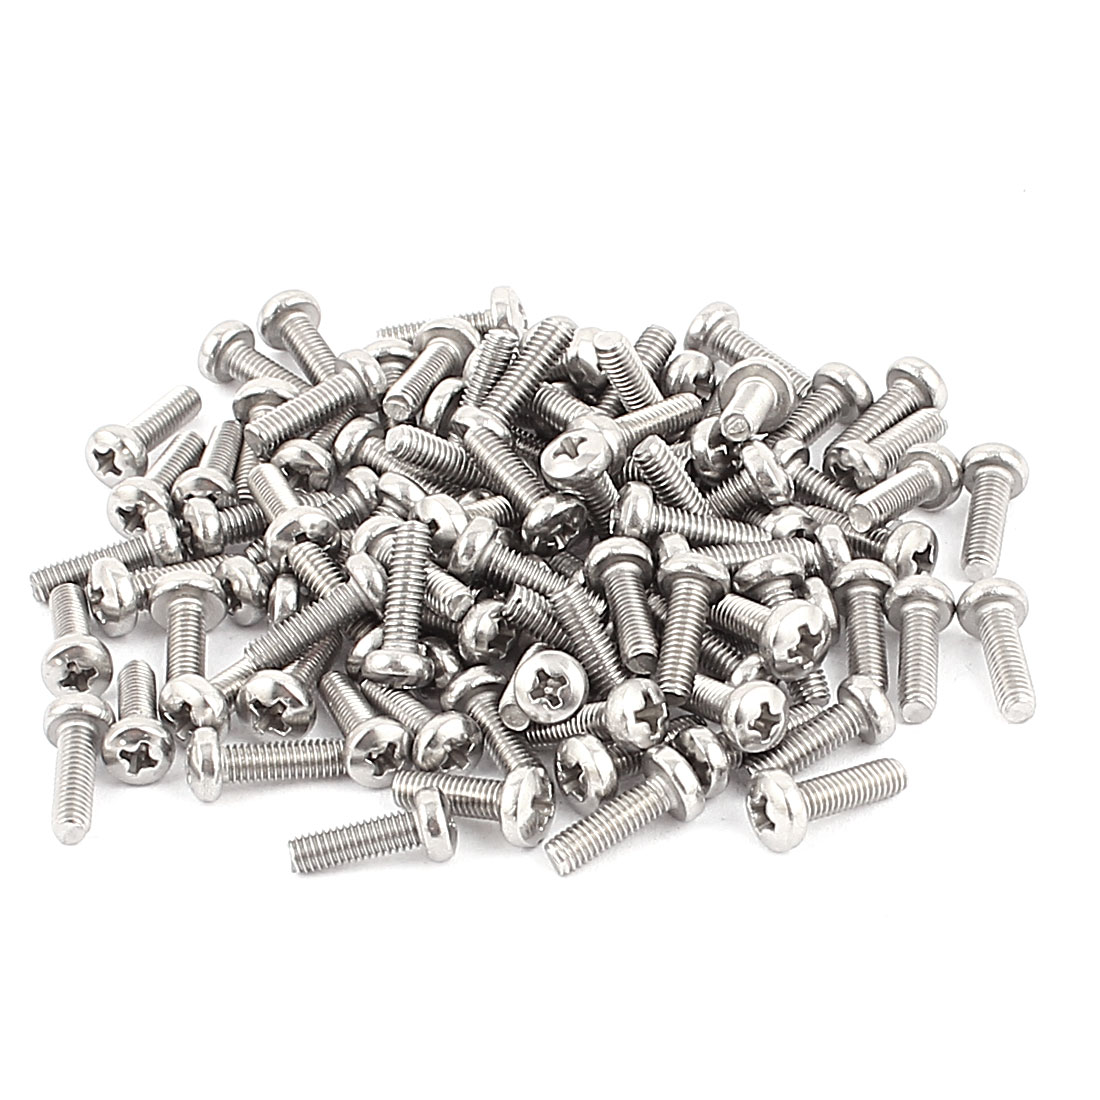 M3 x 10mm Round Head Phillips Screws 100pcs for DVD-ROM Motherboard